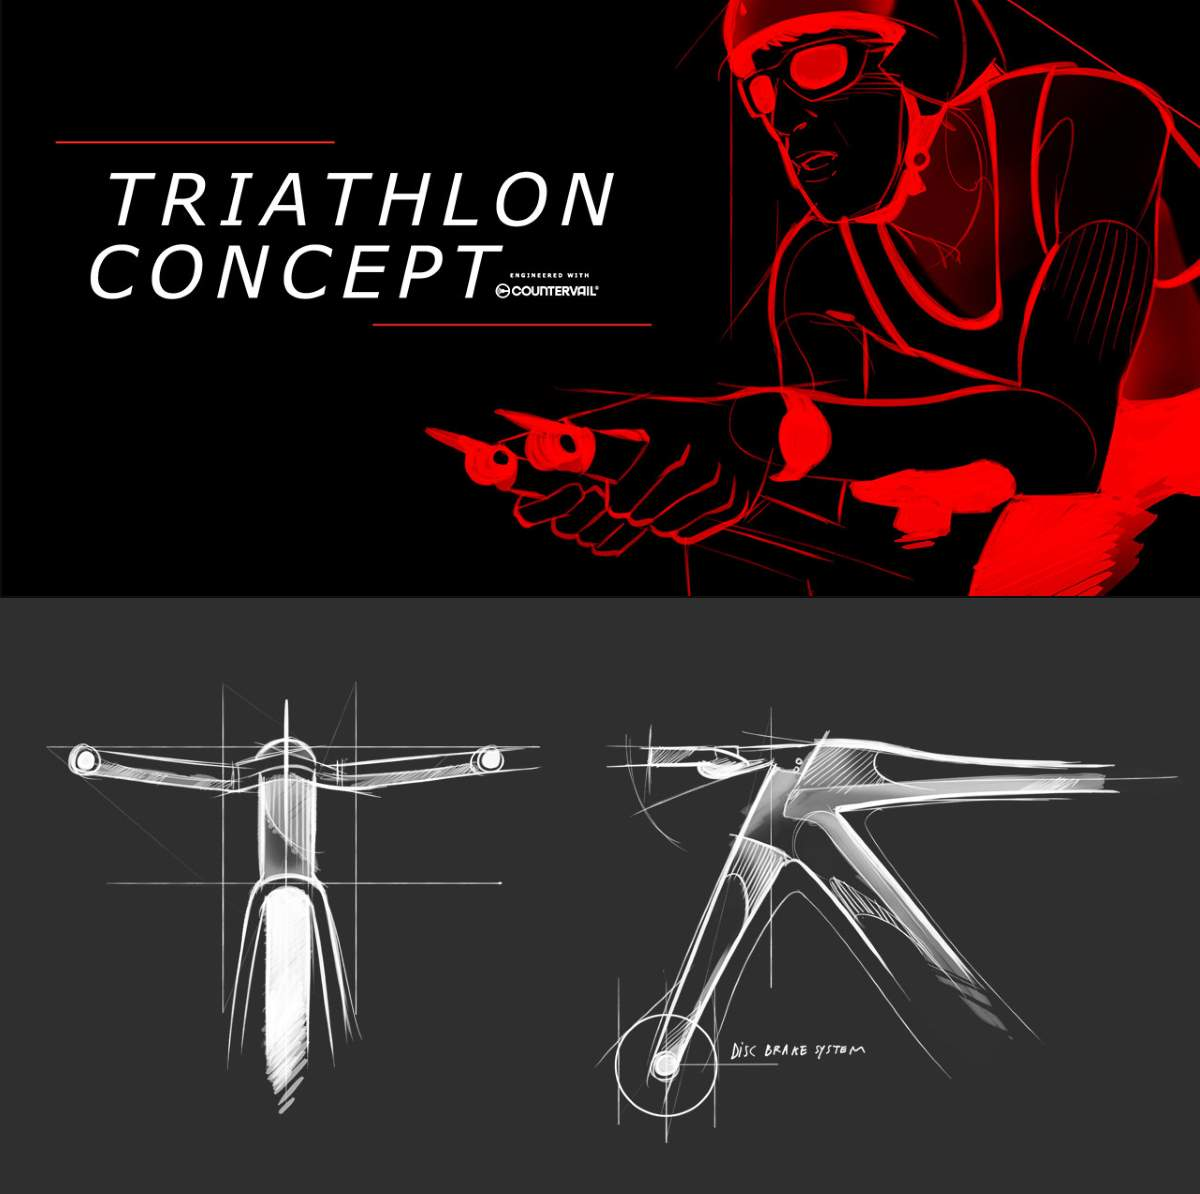 Bianchi-Ferrari Triathlon Concept Bike announcement